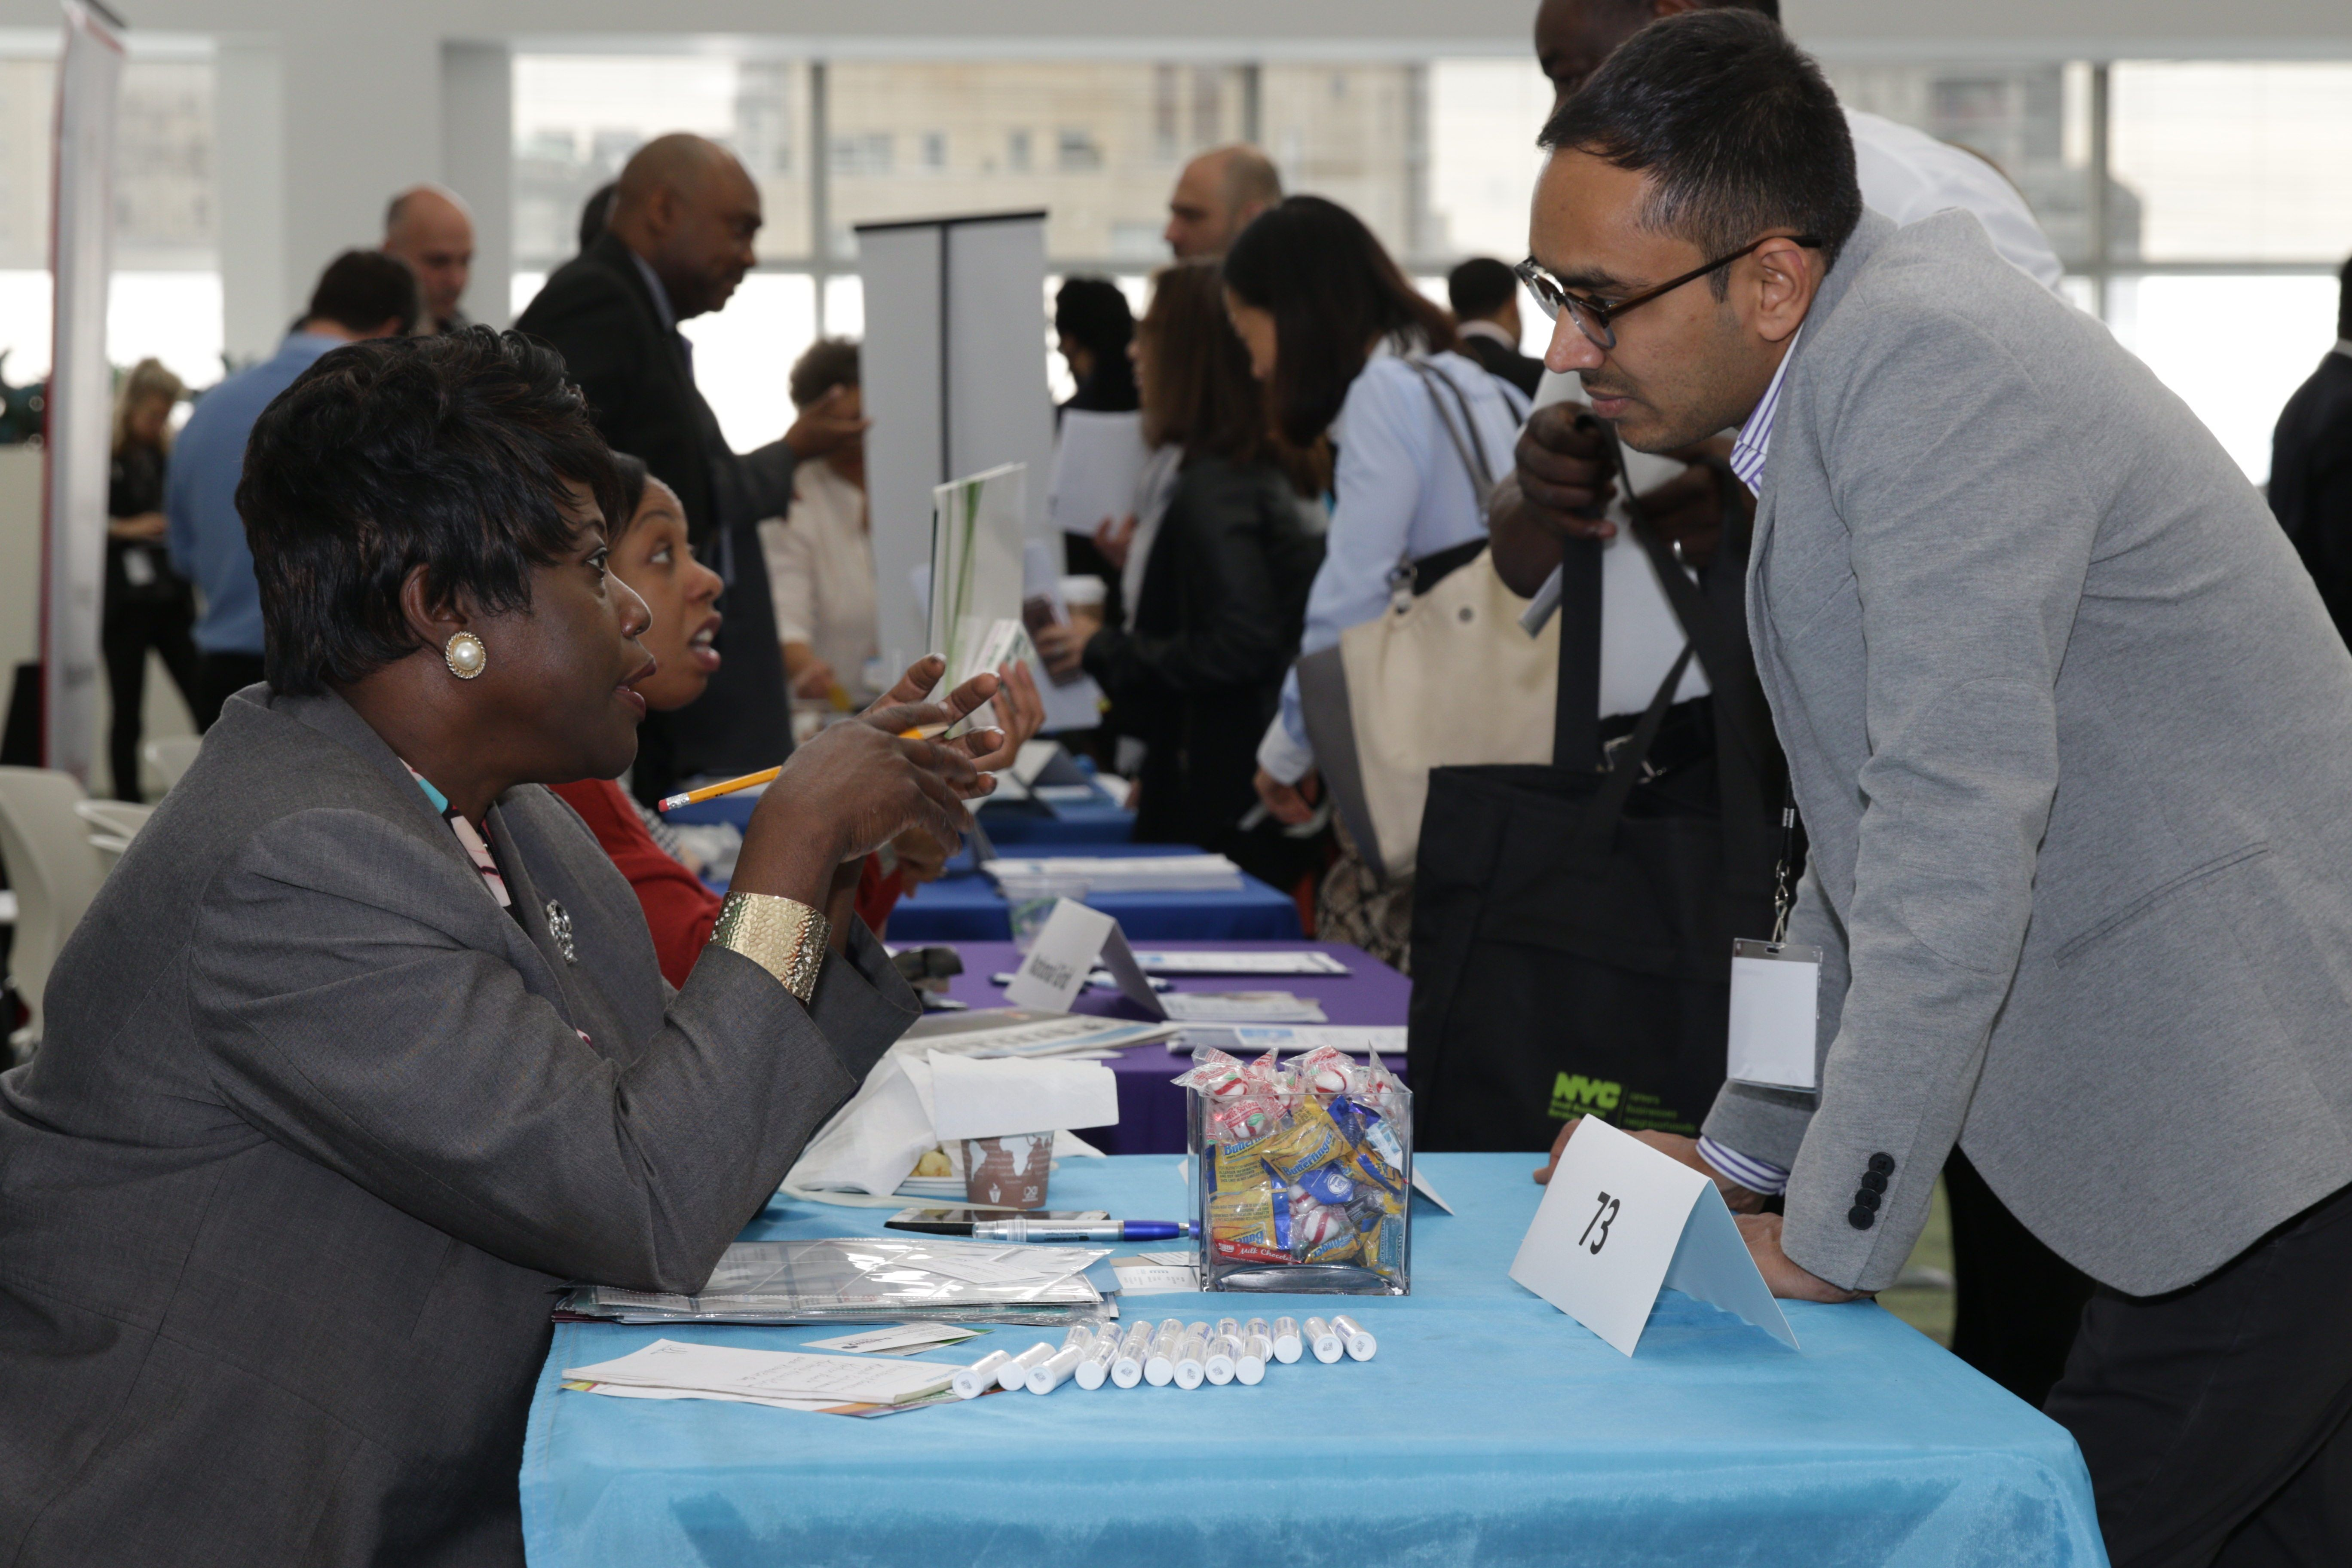 A City representative is assisting a business owner at the annual Citywide Procurement Fair